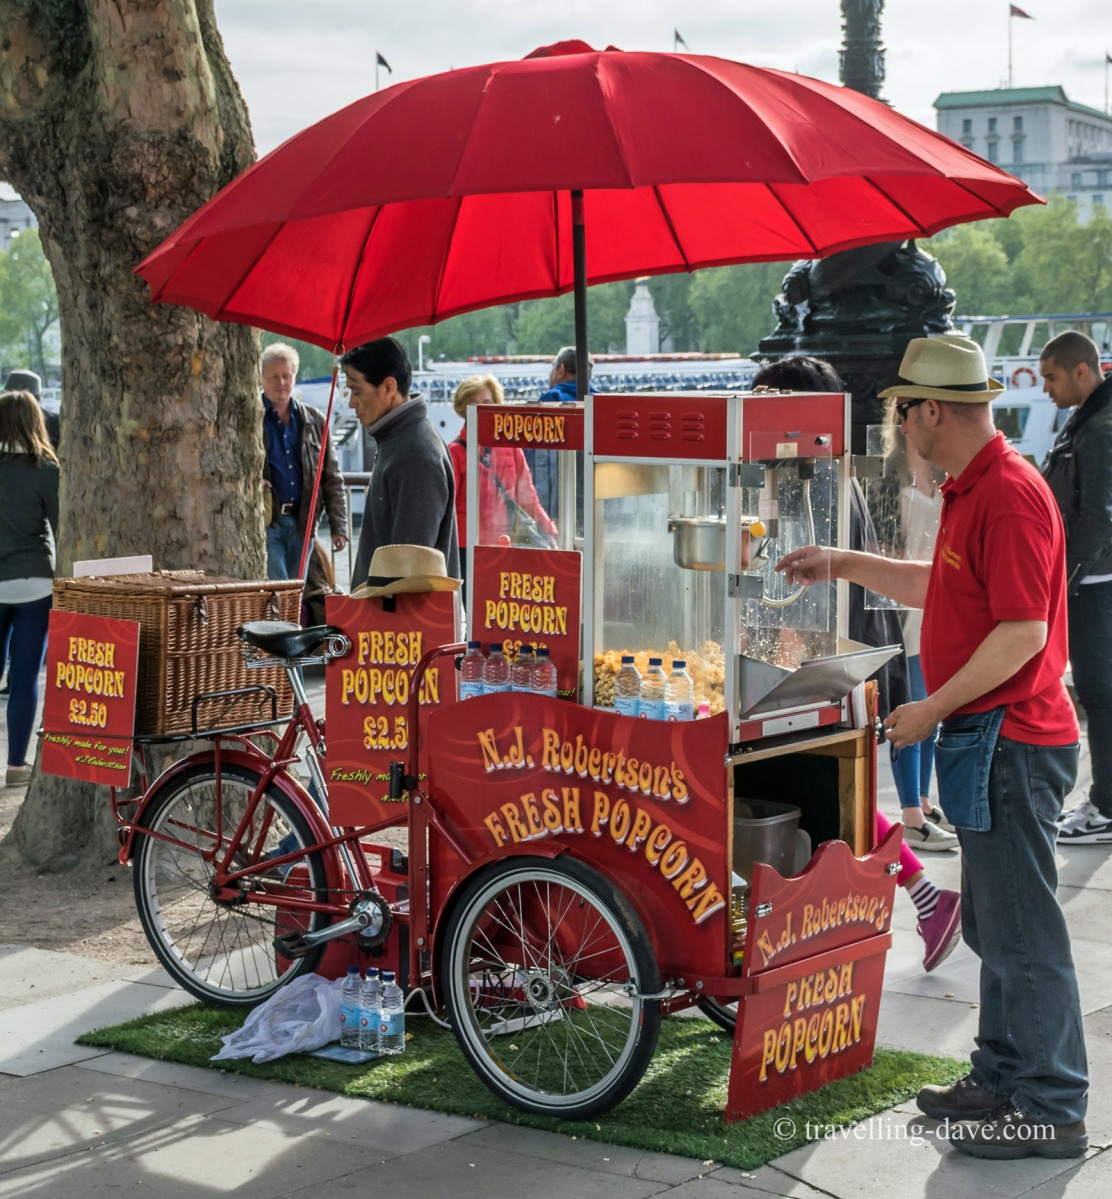 View of a red popcorn cart